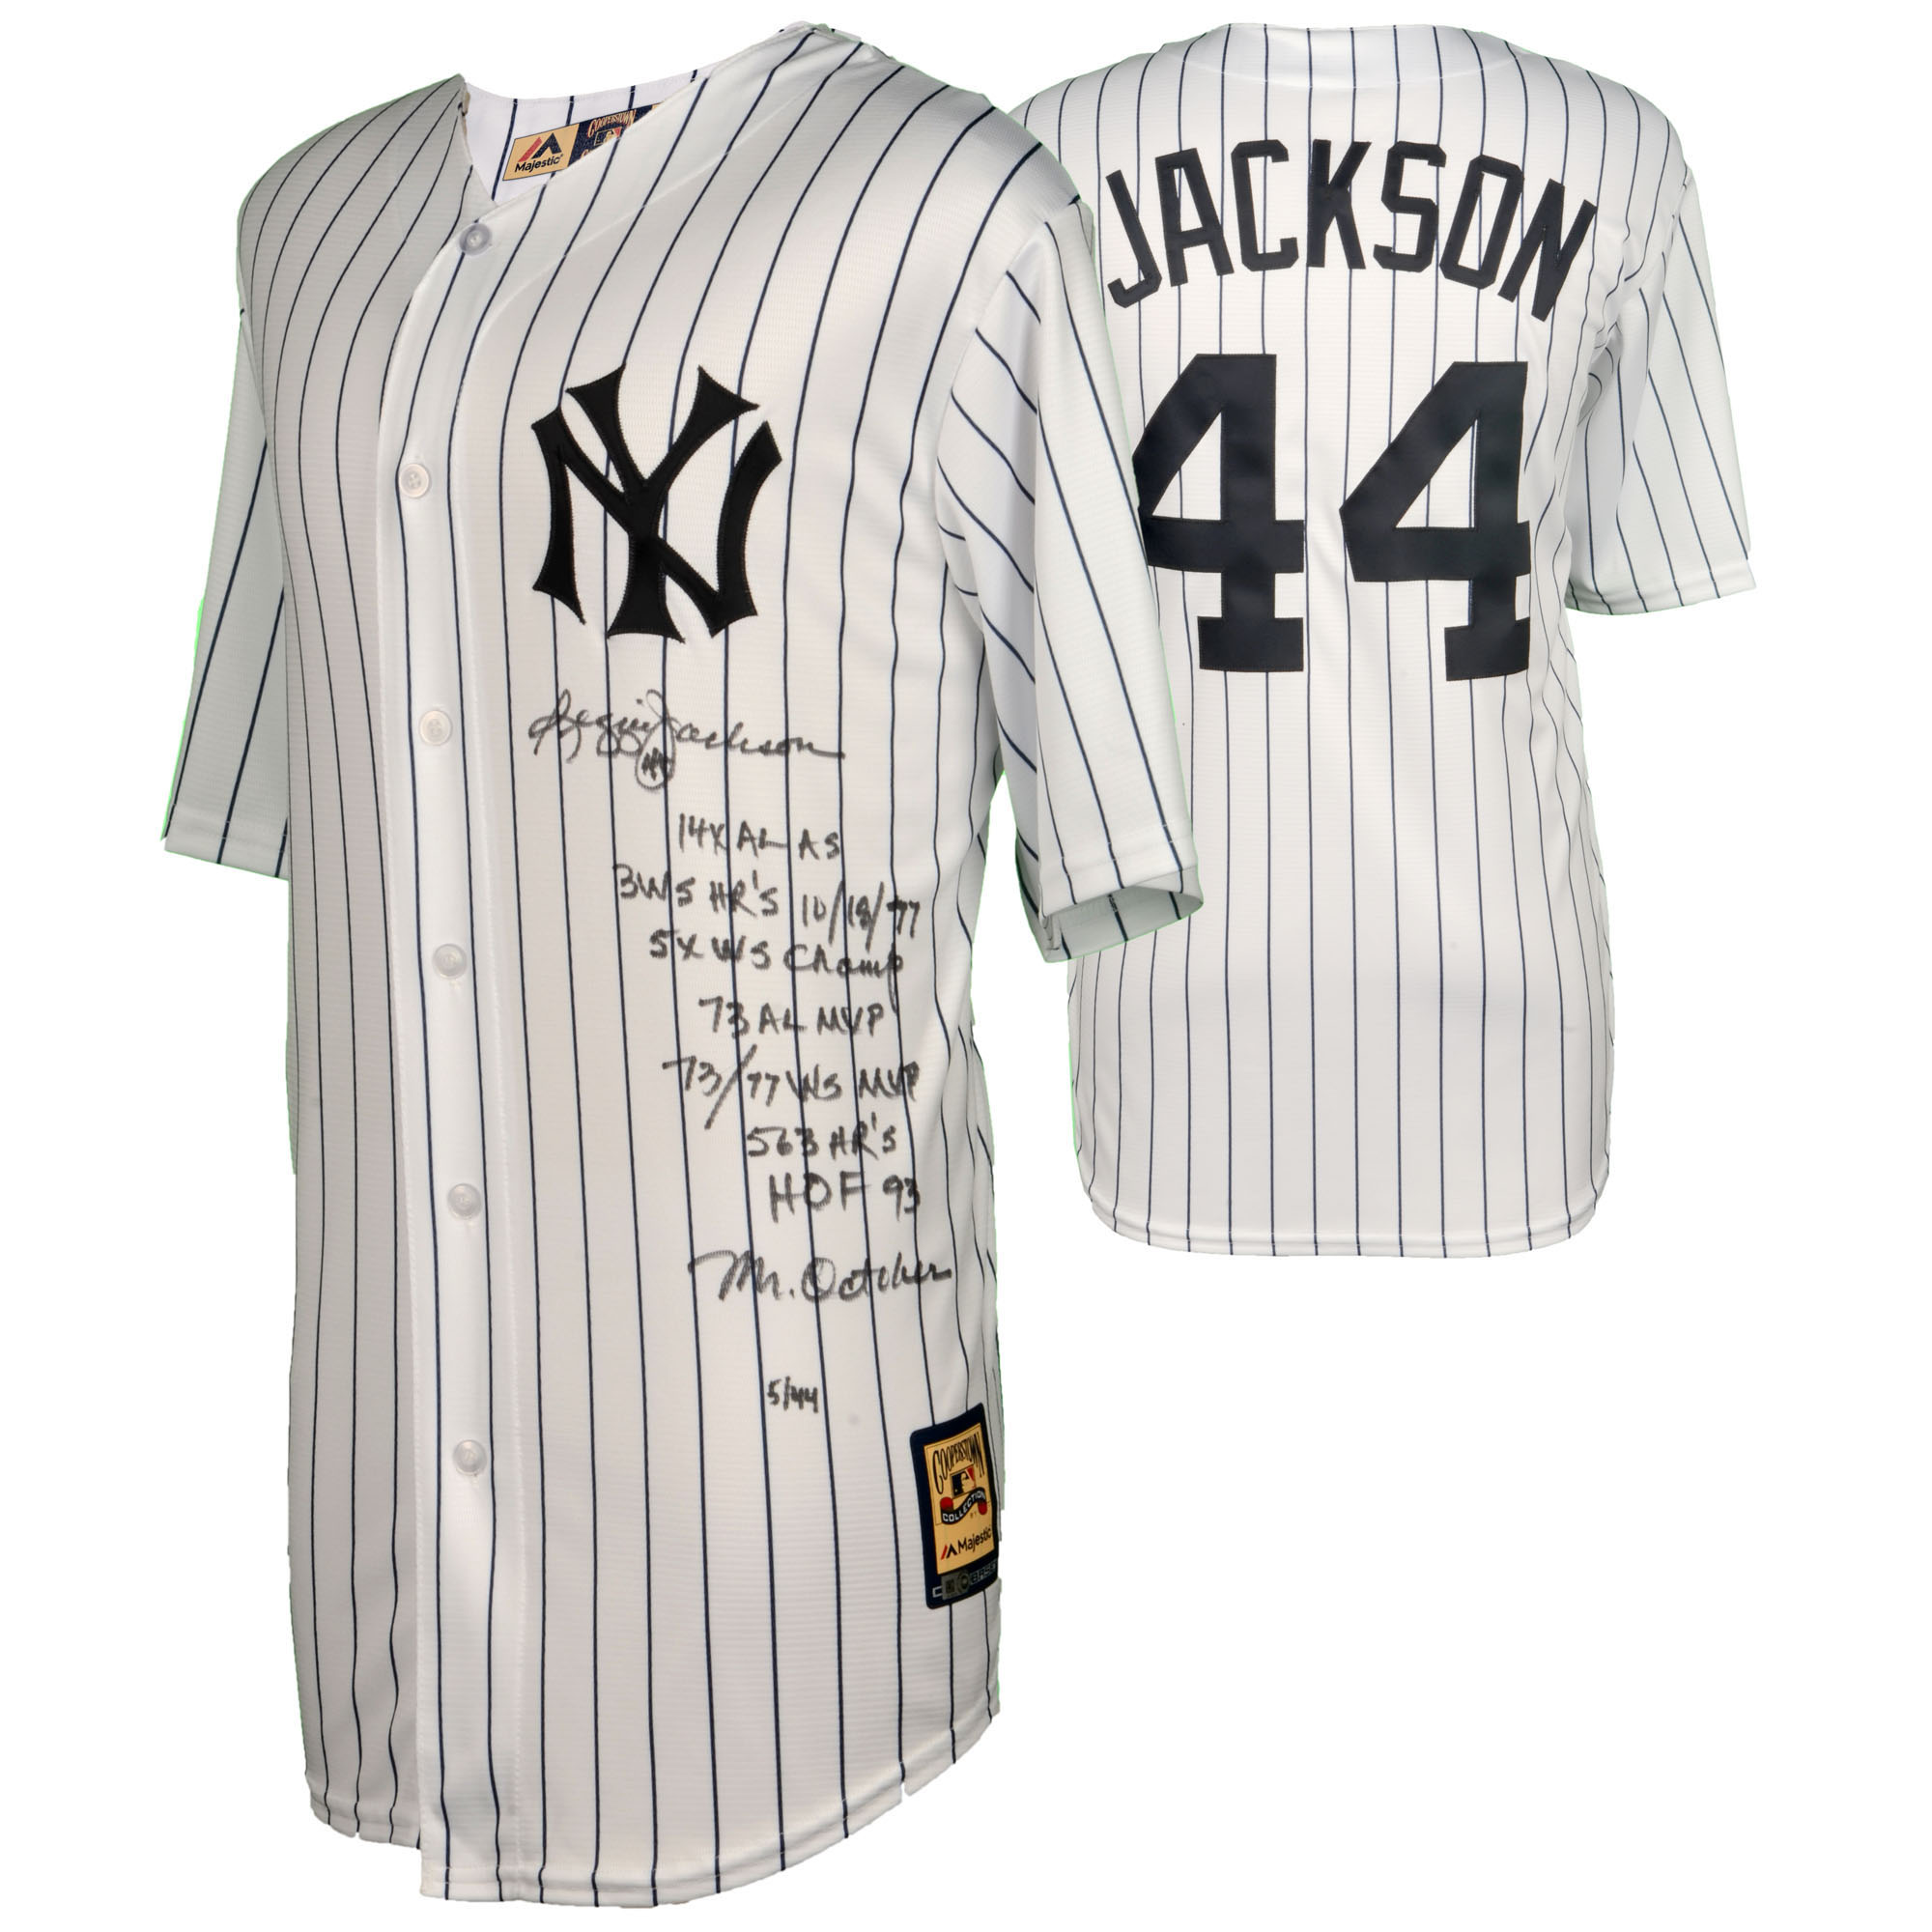 Reggie Jackson New York Yankees Fanatics Authentic Autographed Mitchell and Ness Jersey with Multiple Inscriptions - Limited Edition of 45 - No Size